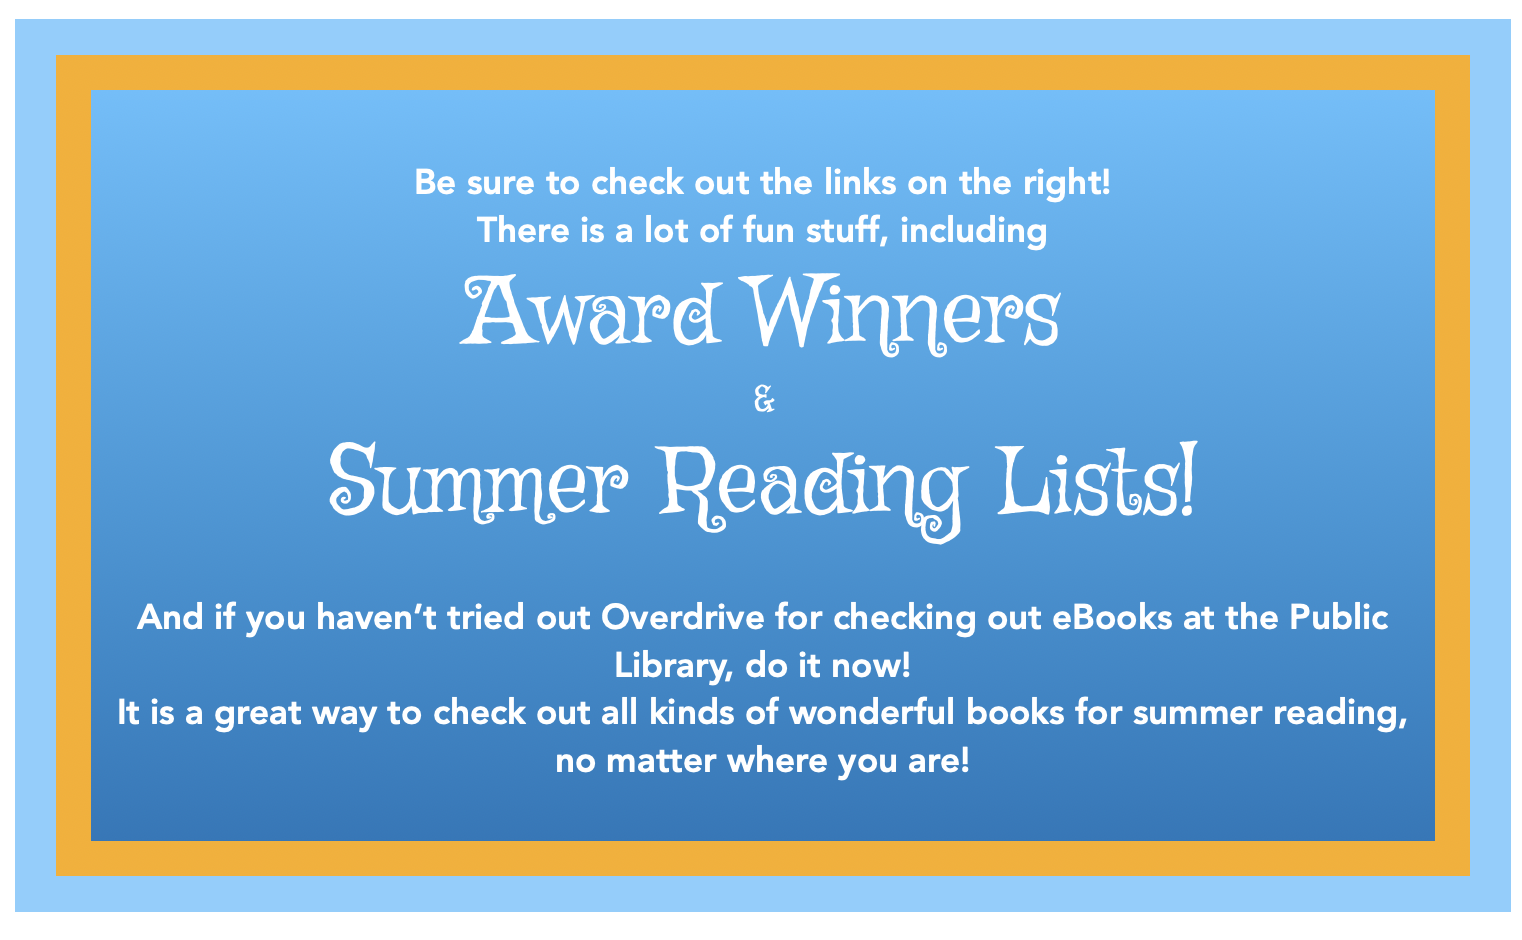 Banner: Check out all the fun things in the menu to the right, including summer reading lists.